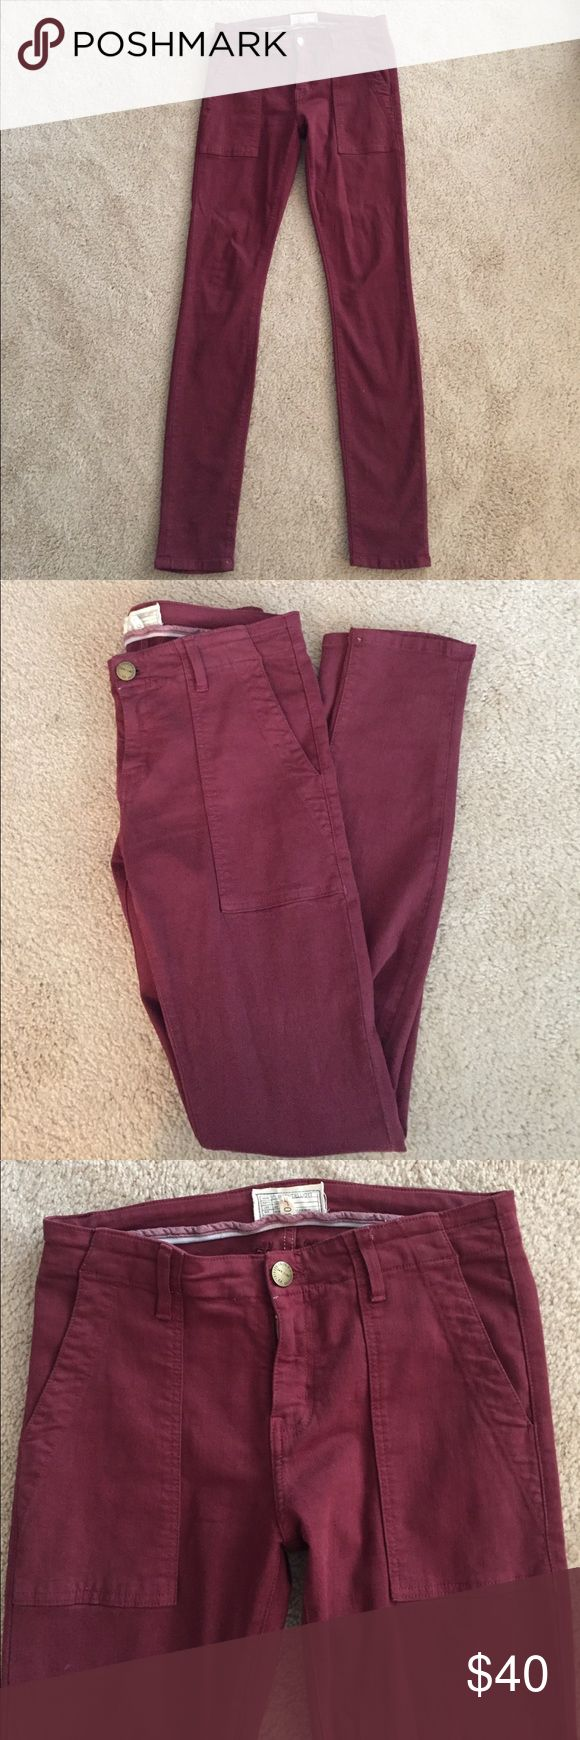 """Current/Elliott dark red skinny jeans! These practically new burgundy skinny jeans are super flattering! Current/Elliott, they are size 30, 42"""" long so great for tall girls! They were only worn twice. Great staple piece! Current/Elliott Jeans Skinny"""